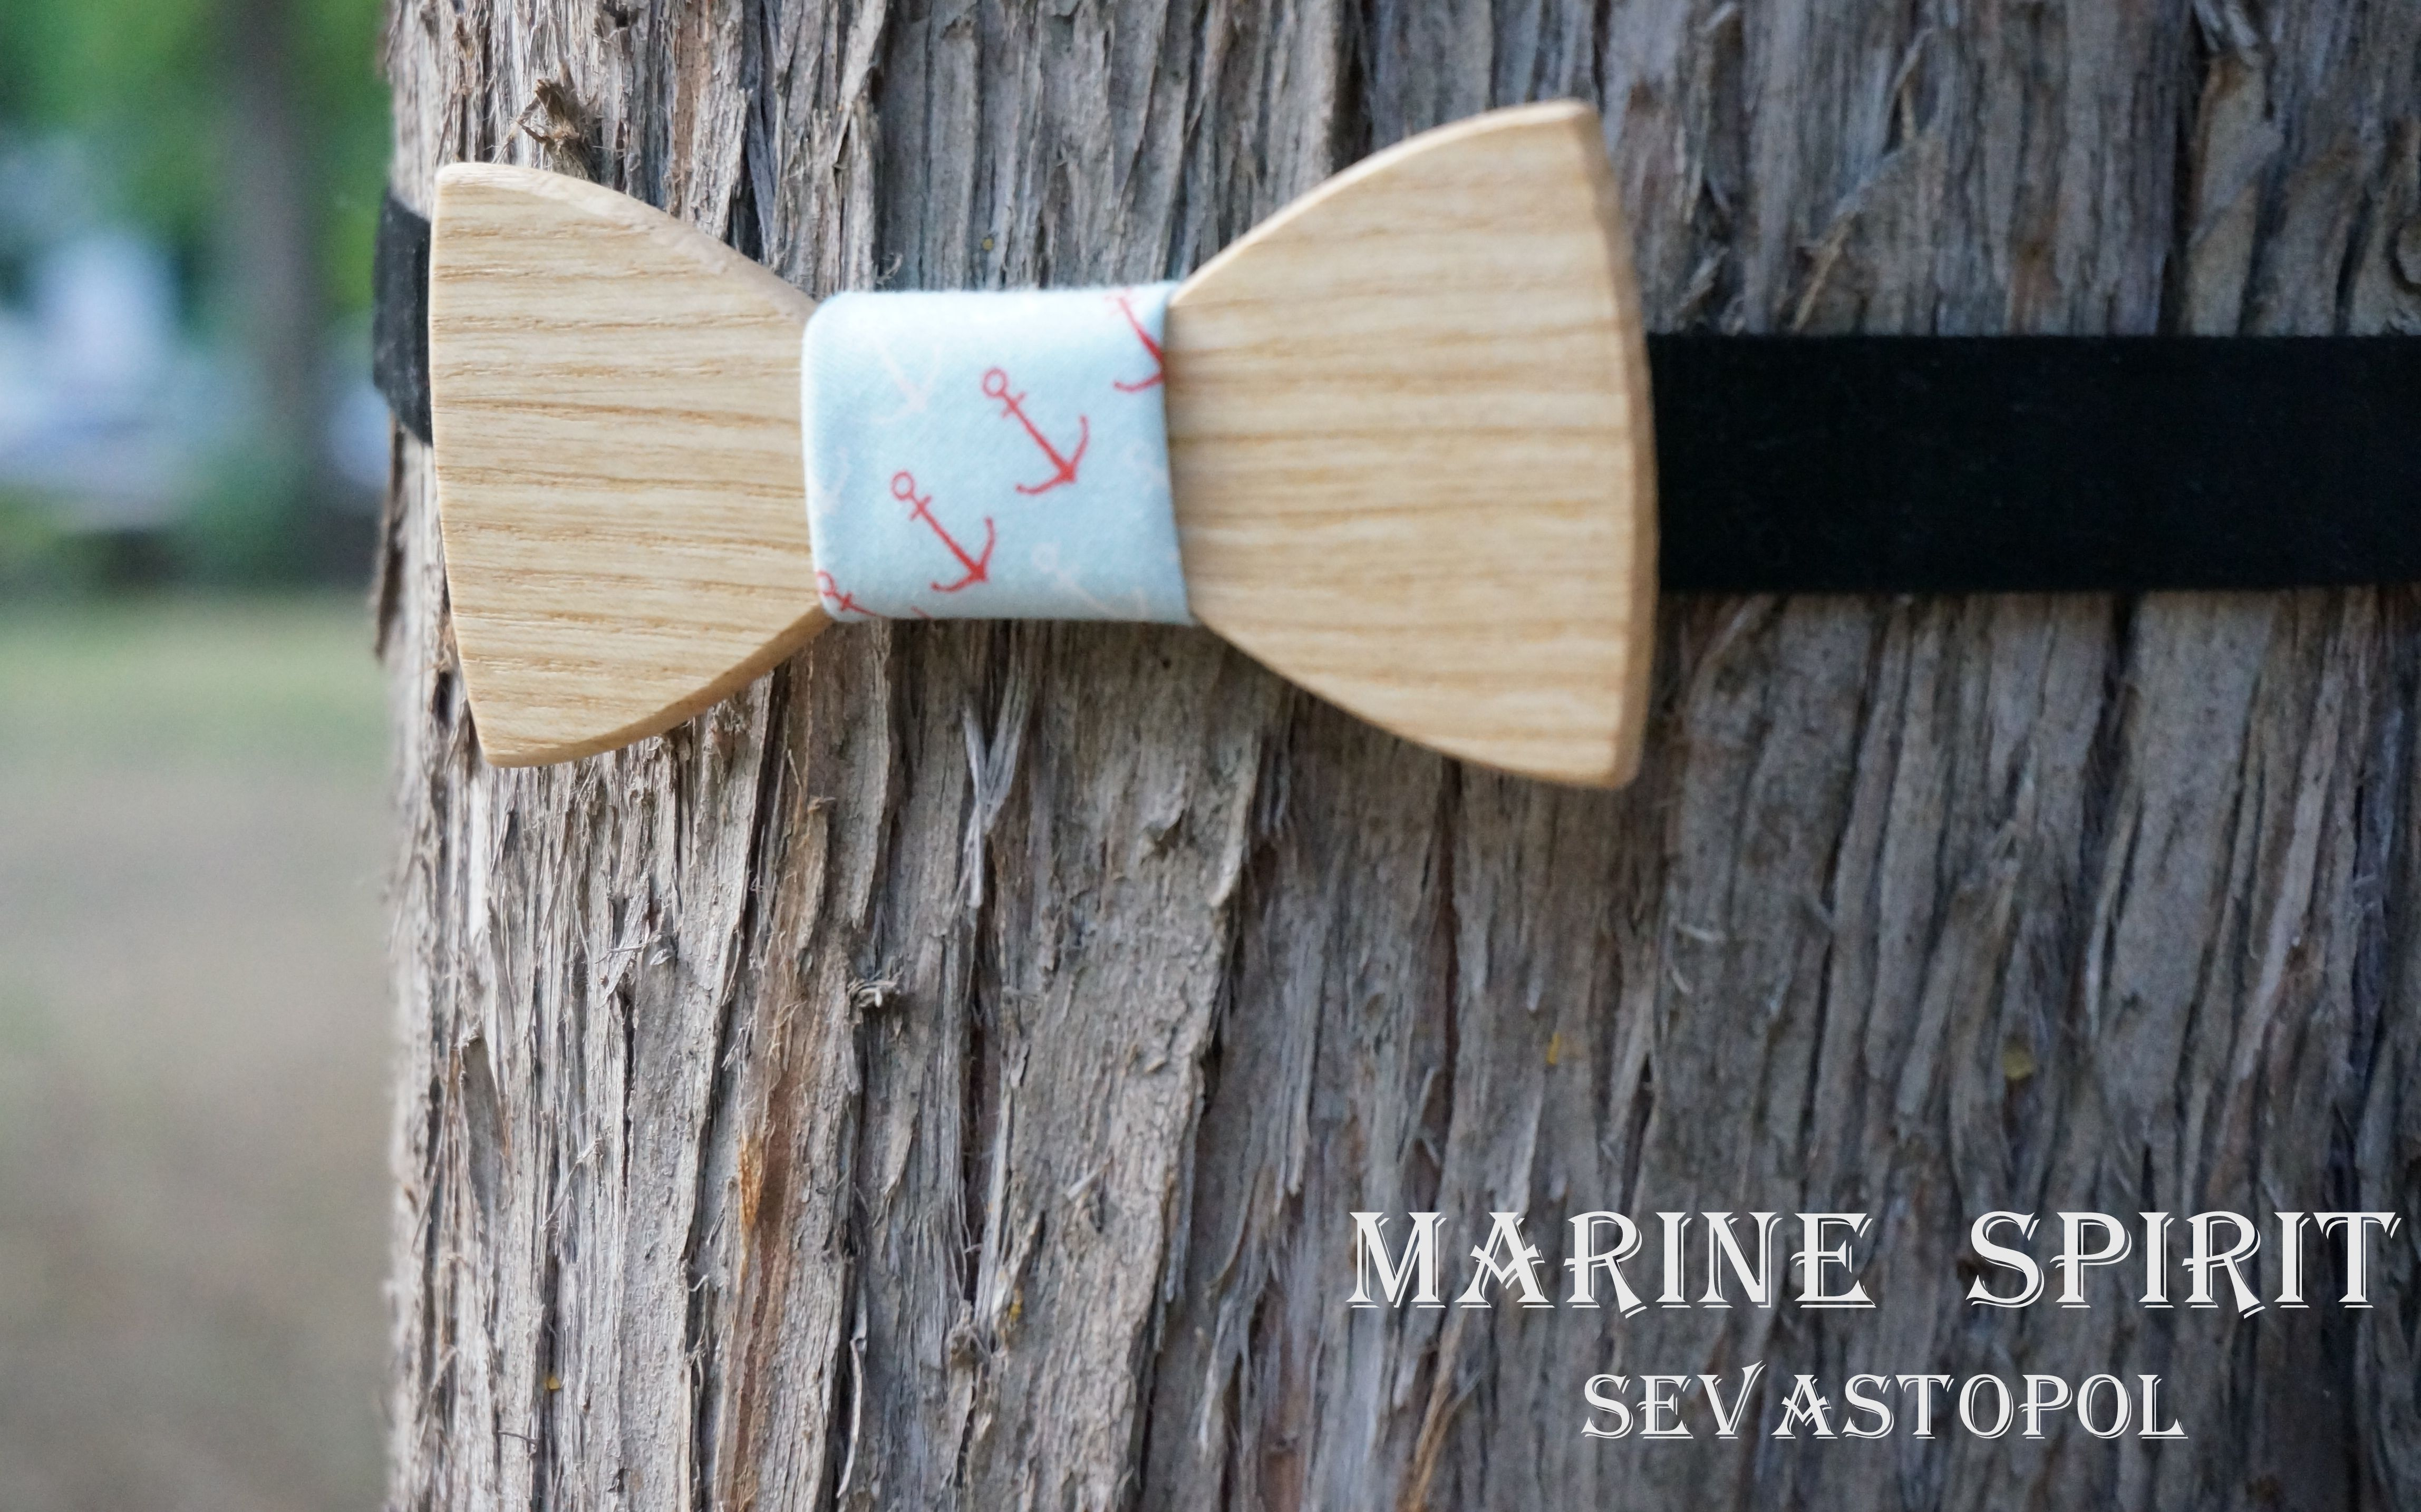 Wooden bow tie. Leander  wood: Fraxinus  material: cotton 100%  size: 10*4,5  price: $38.00 USD  https://www.etsy.com/listing/155092608/wooden-bow-ties?ref=shop_home_active